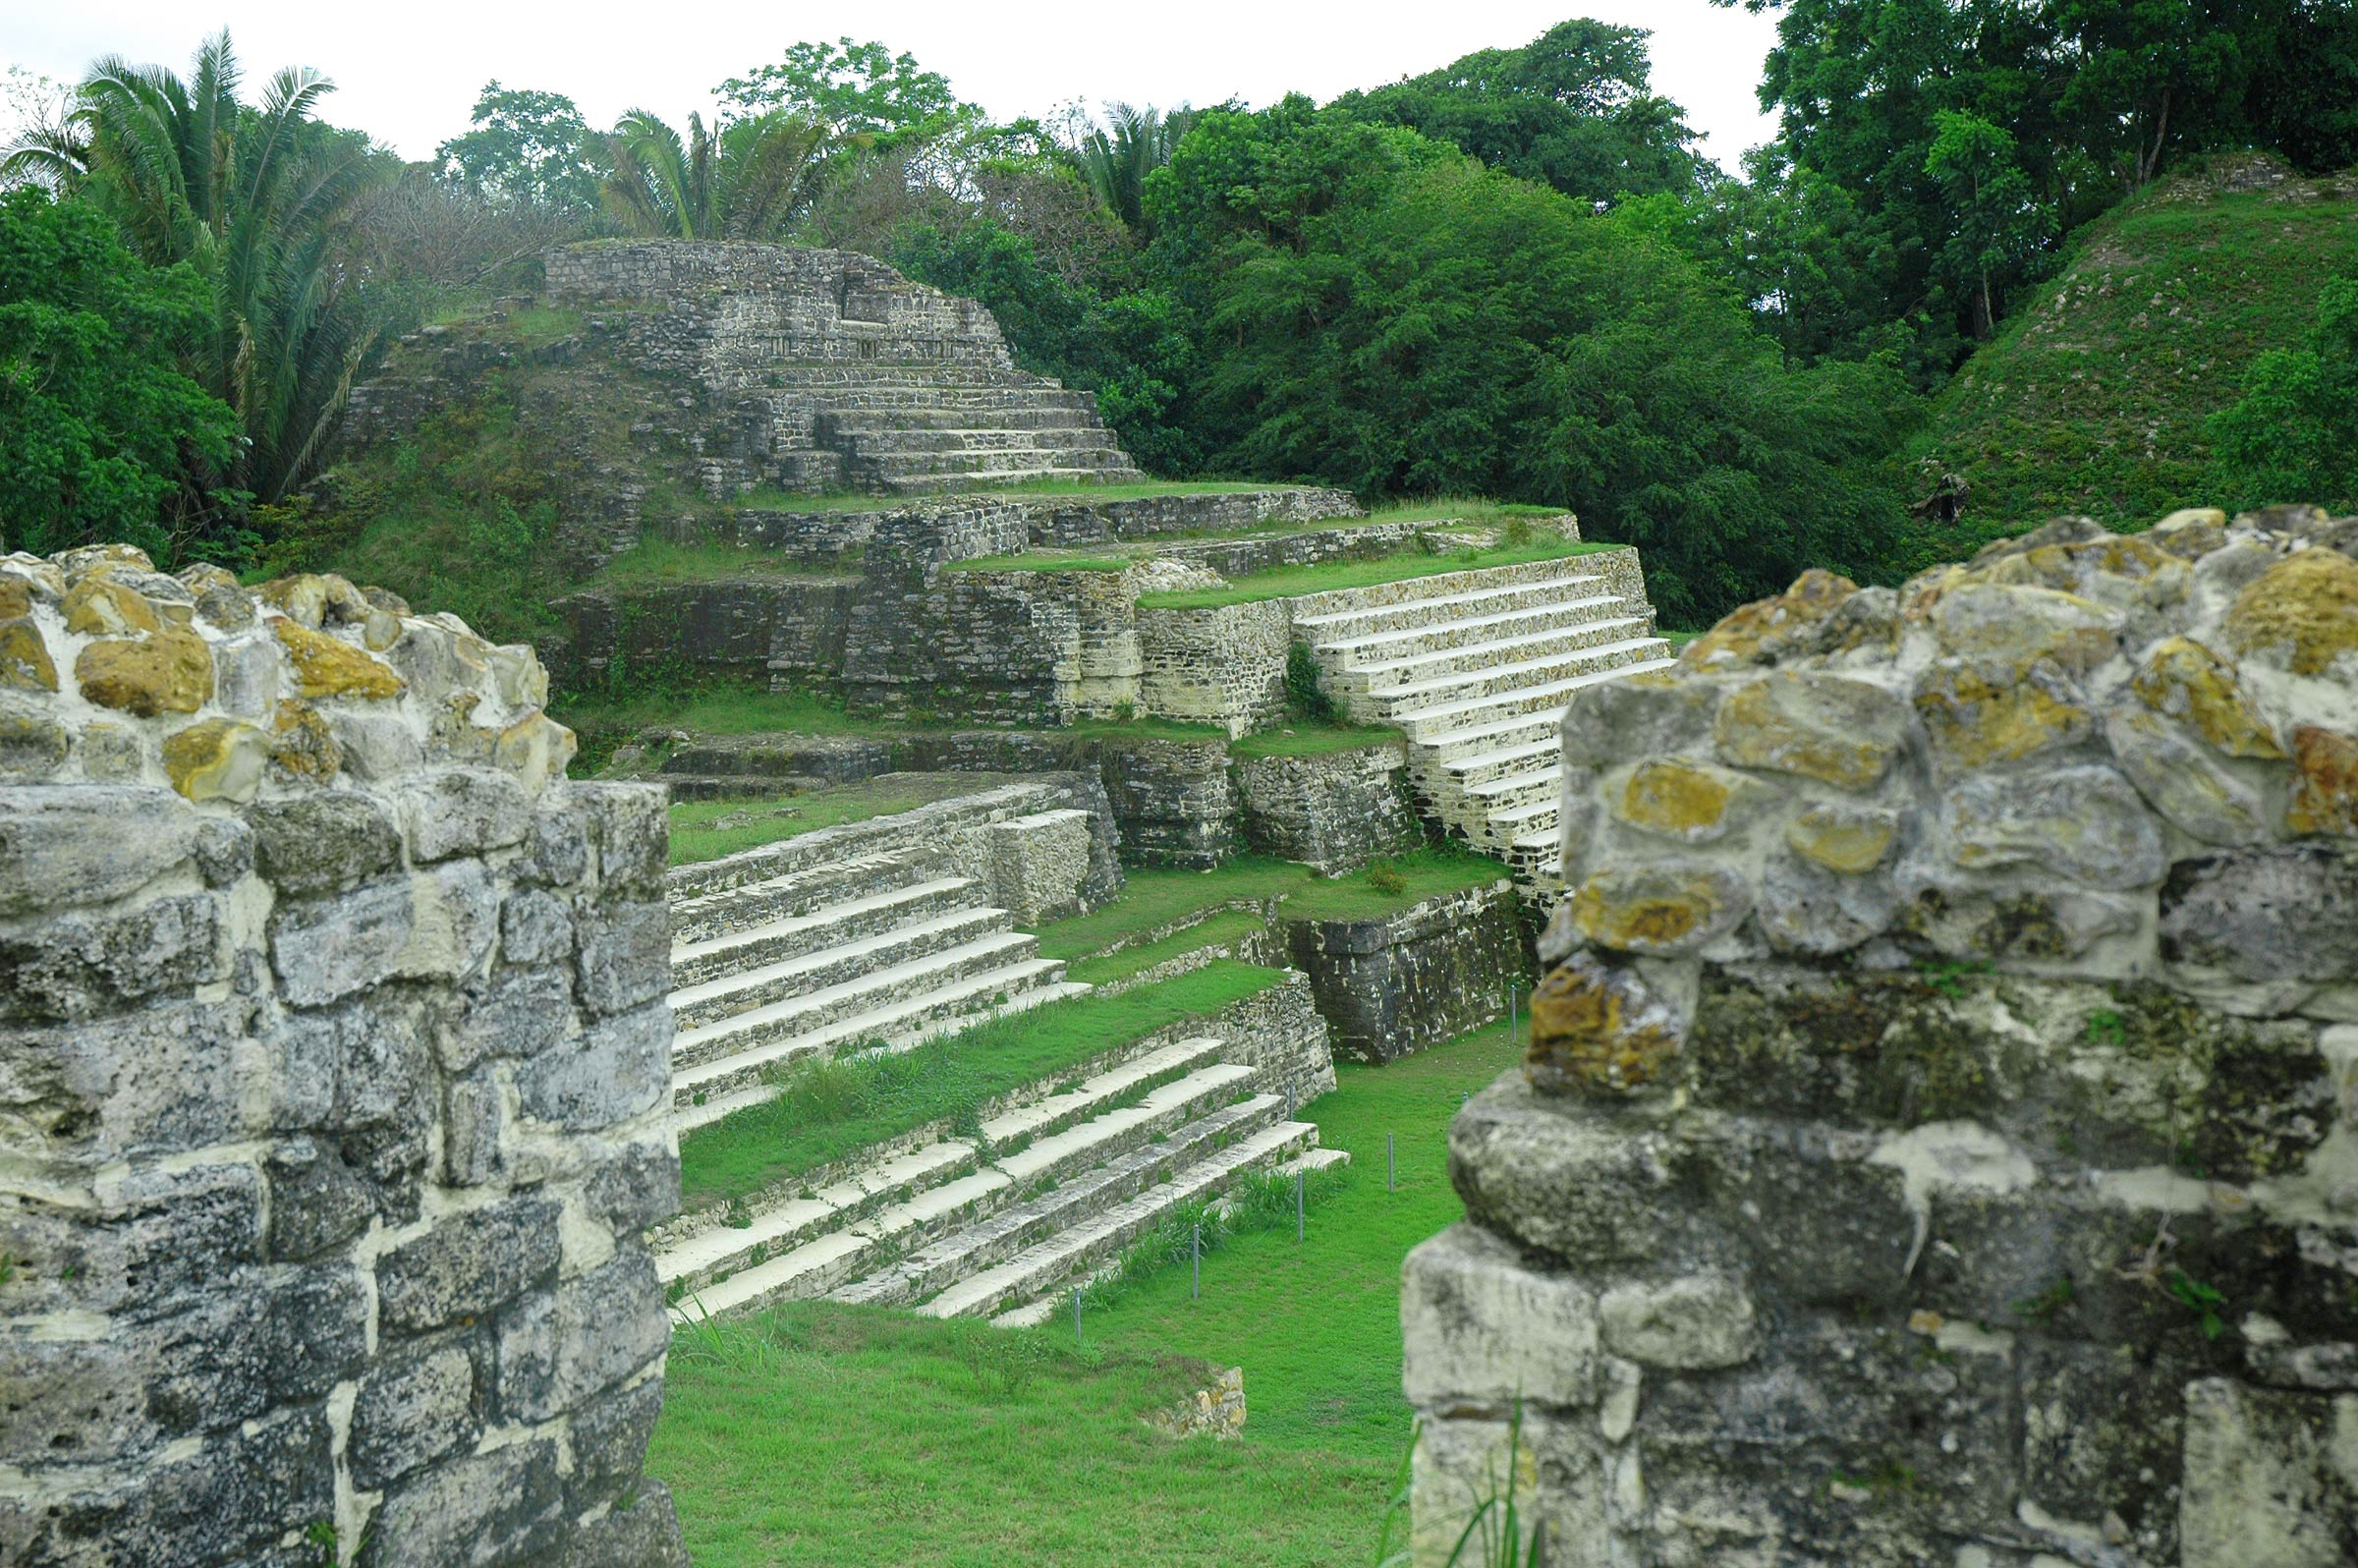 Copan Ruinas Honduras  city photos gallery : Copan Ruins Acropolis Visit mayan science center in honduras, copan ...